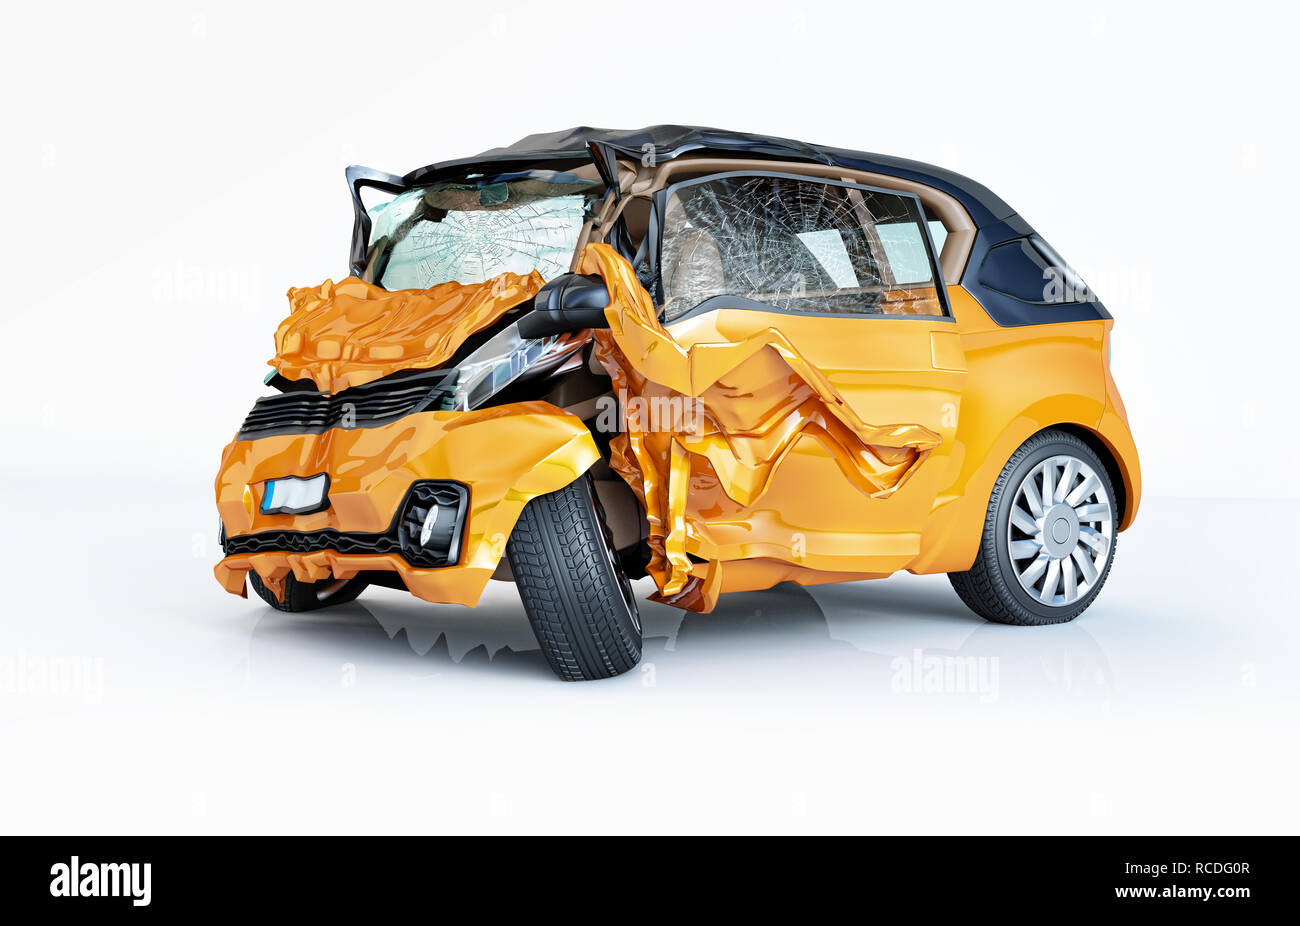 Single car crashed. Yellow city car havily damaged on the front part. Isolated on white background. Perspective view. - Stock Image